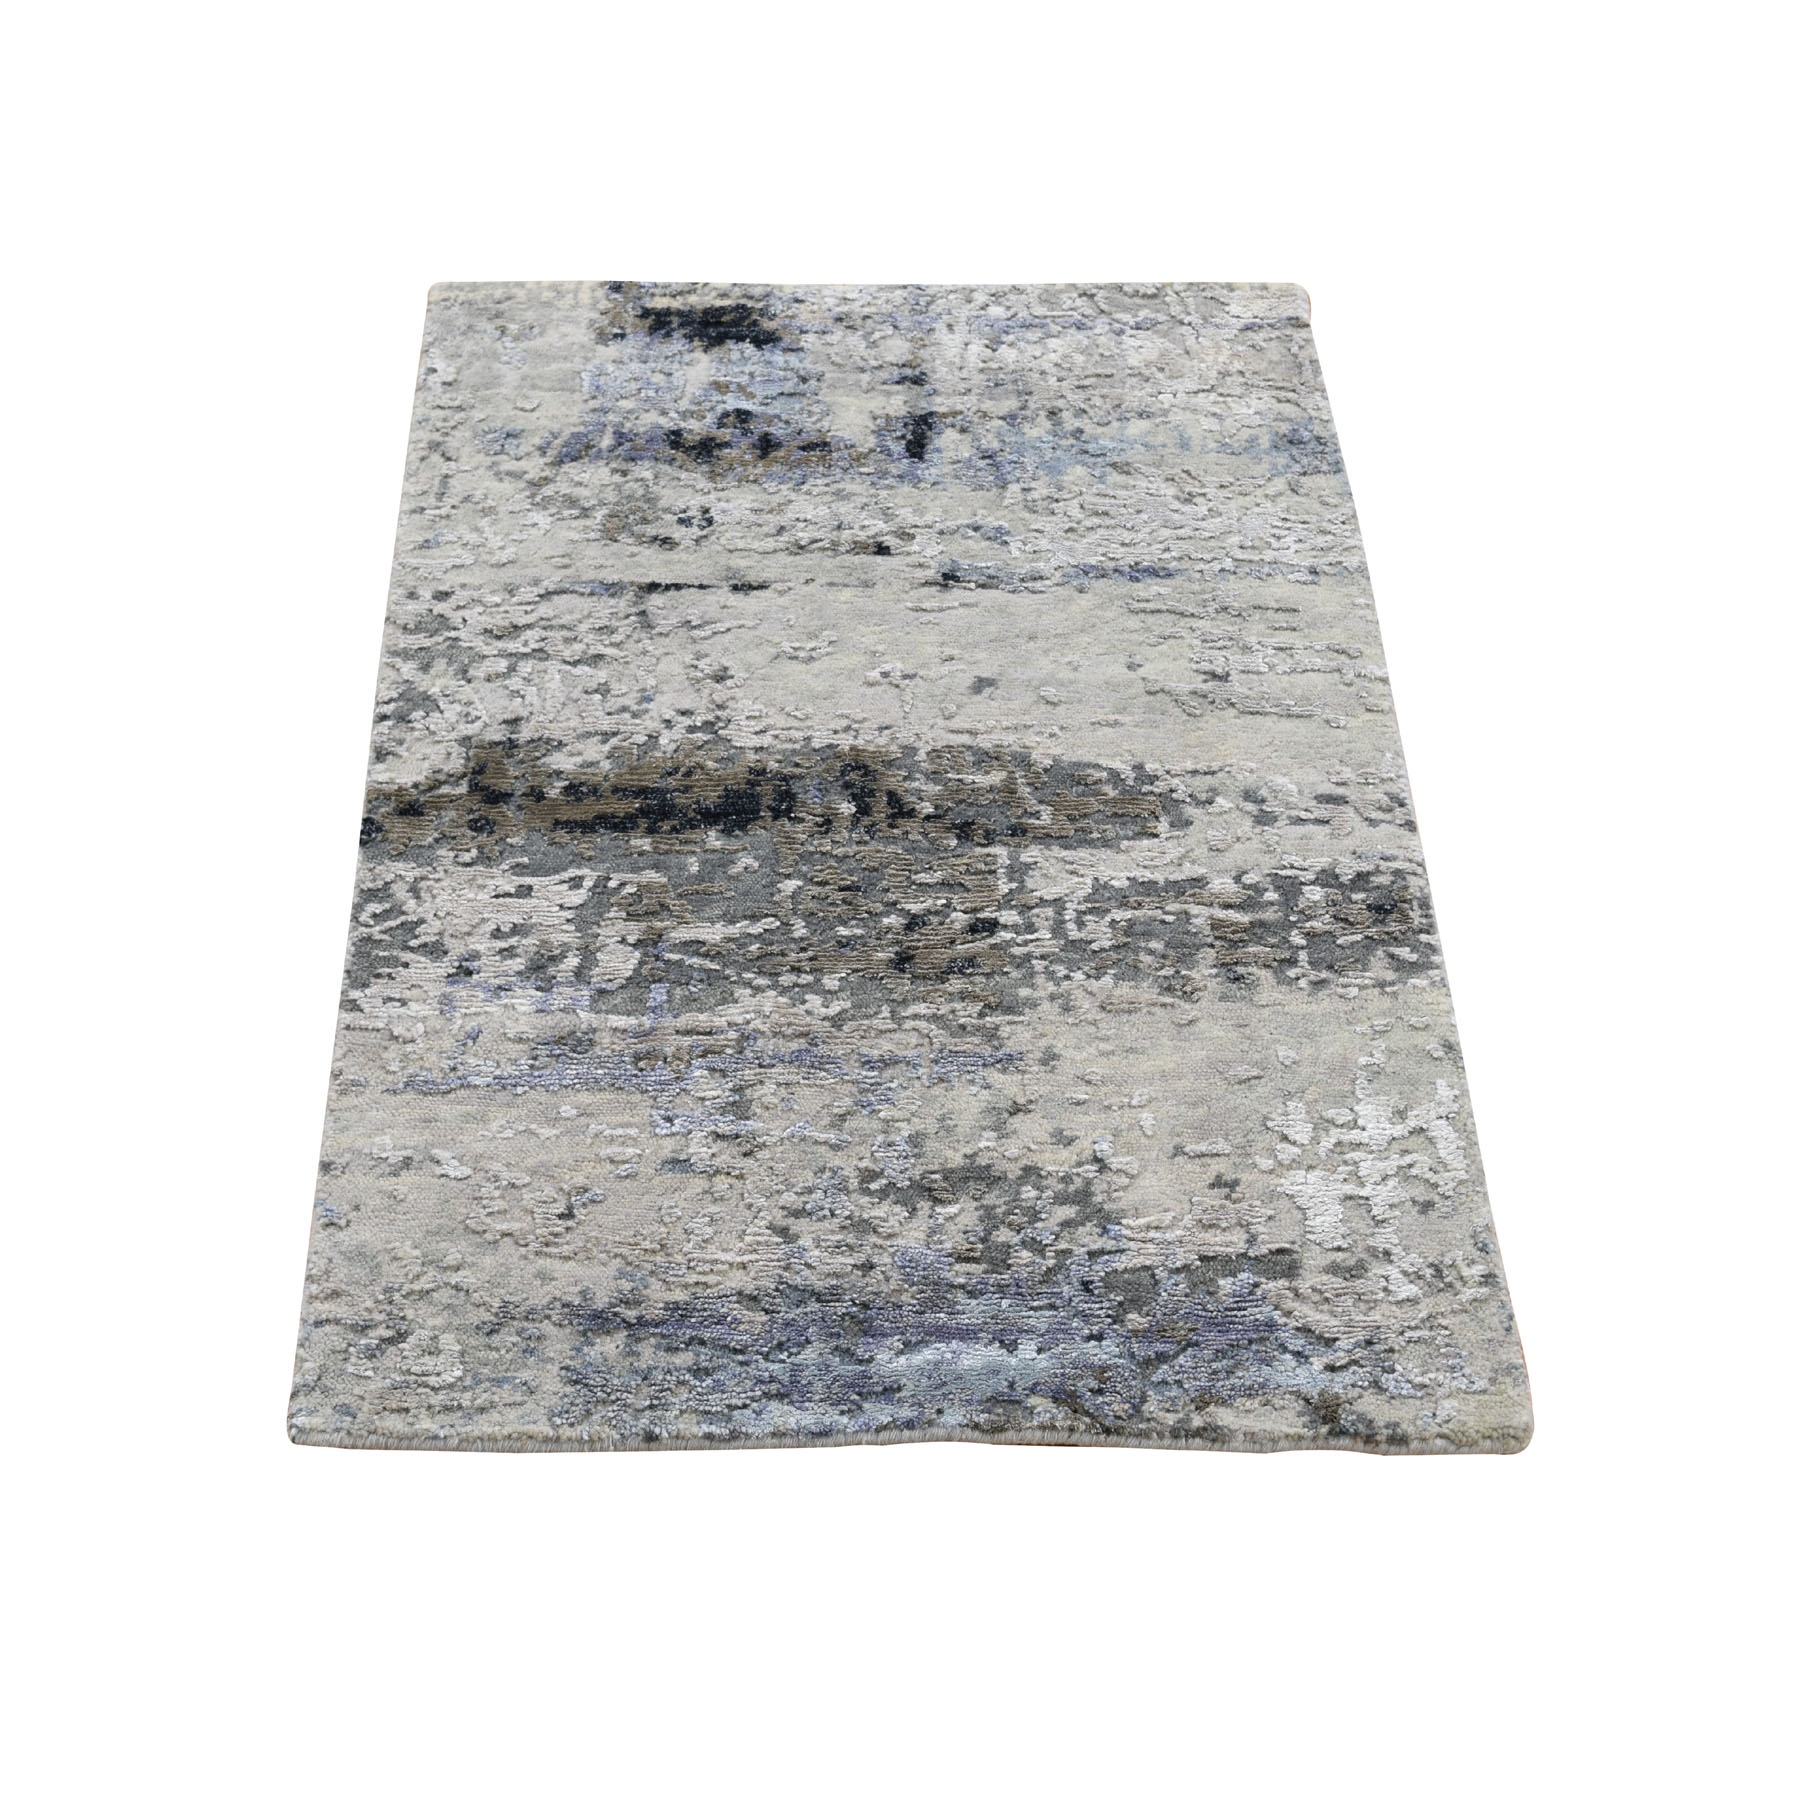 2'X3' Hand Knotted Gray Abstract Design Wool And Silk Oriental Rug moad8aba